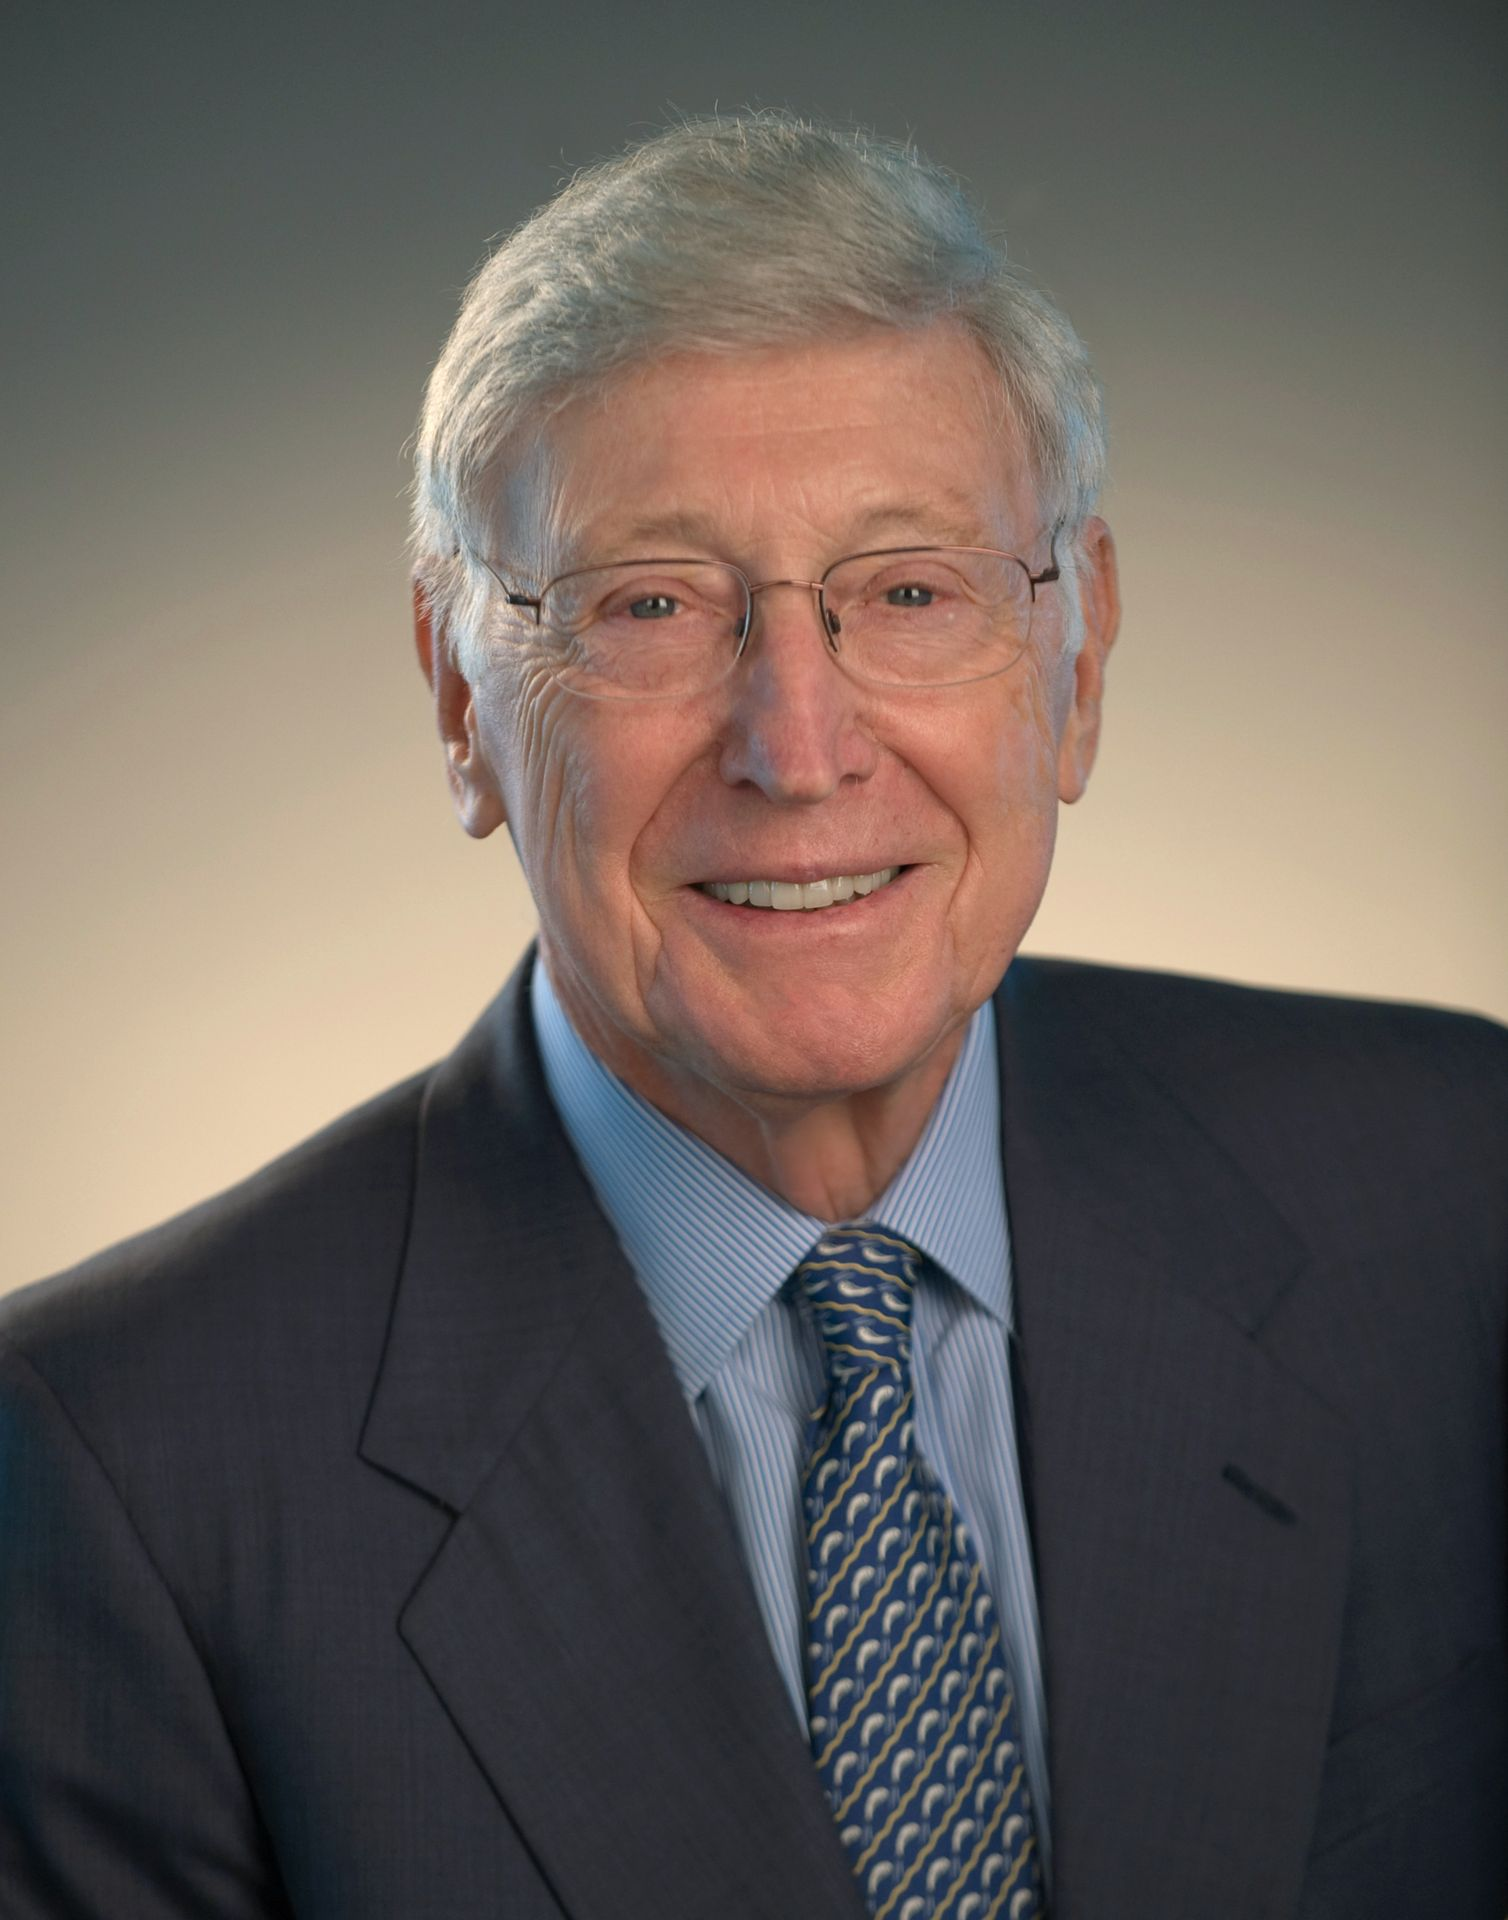 Benefactor, Chairman Emeritus of the Board